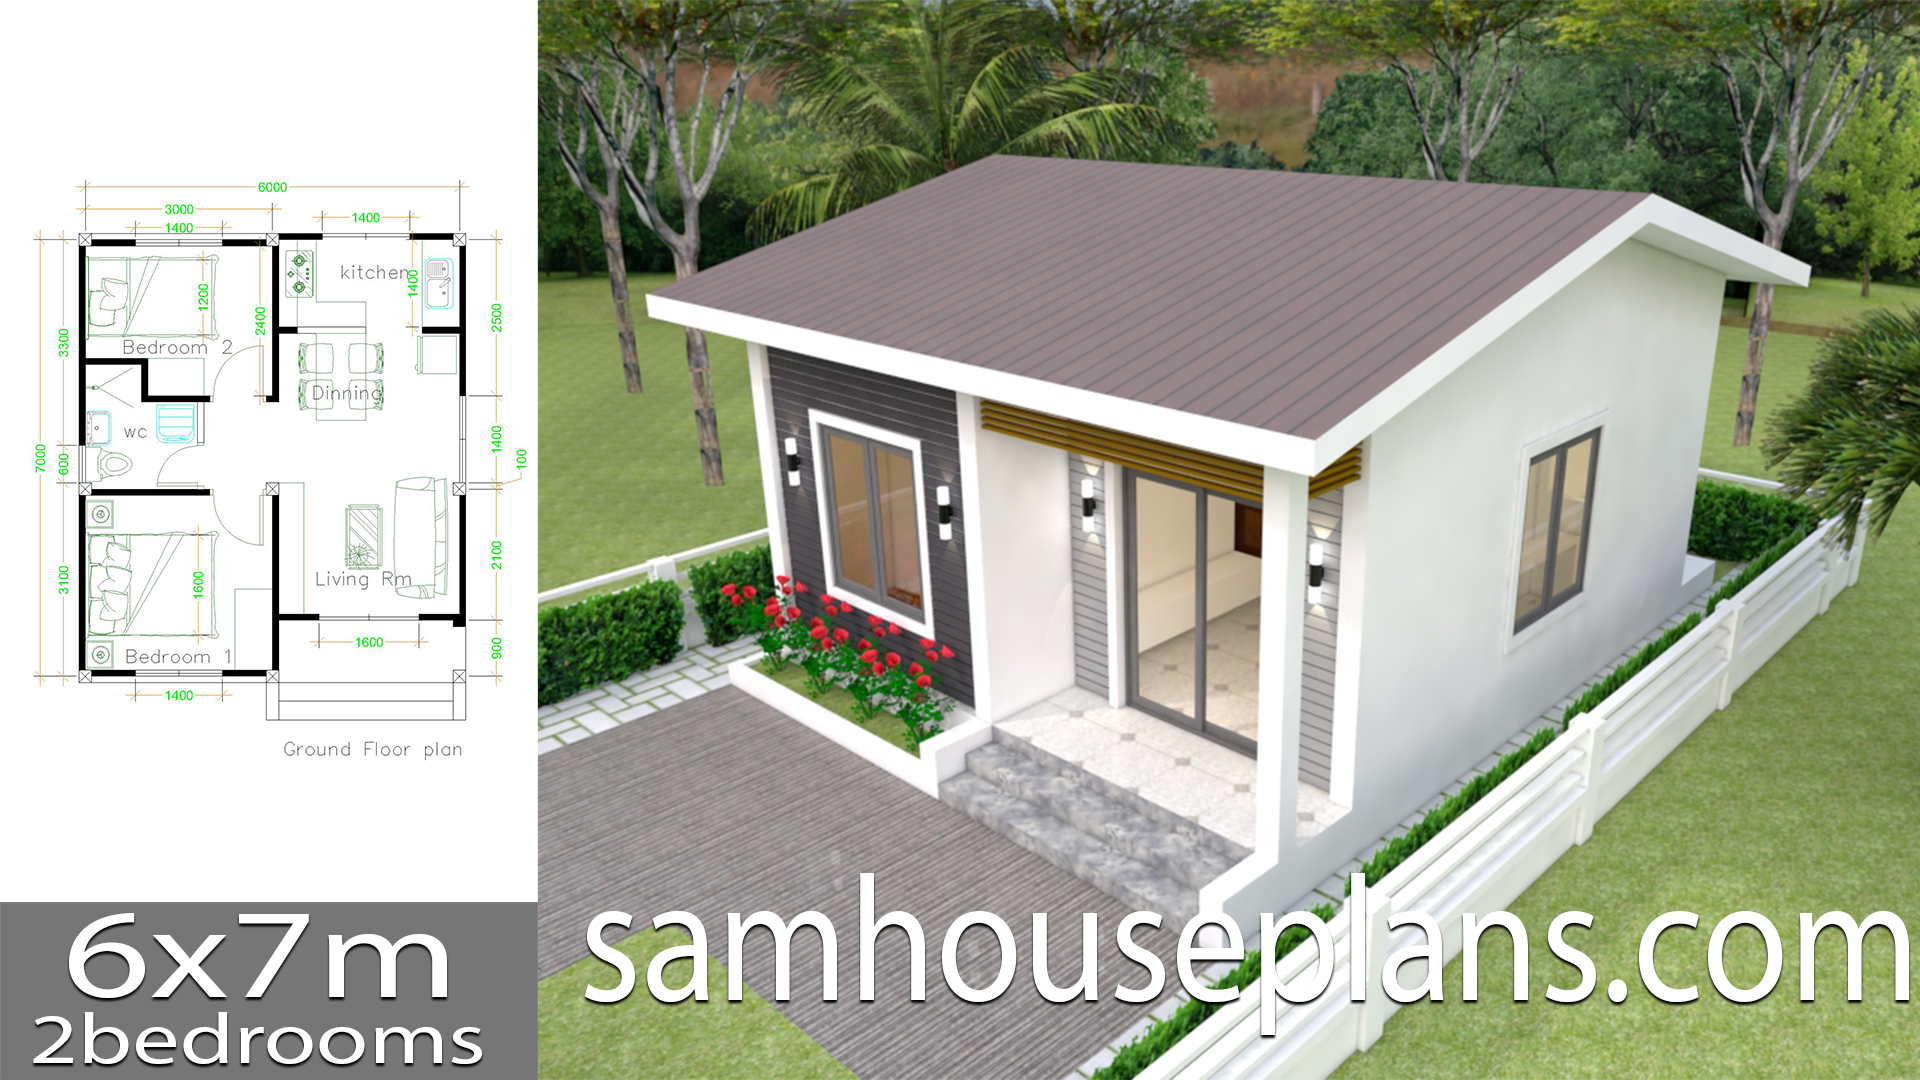 House Plans 6x7m with 2 bedrooms - SamHousePlans